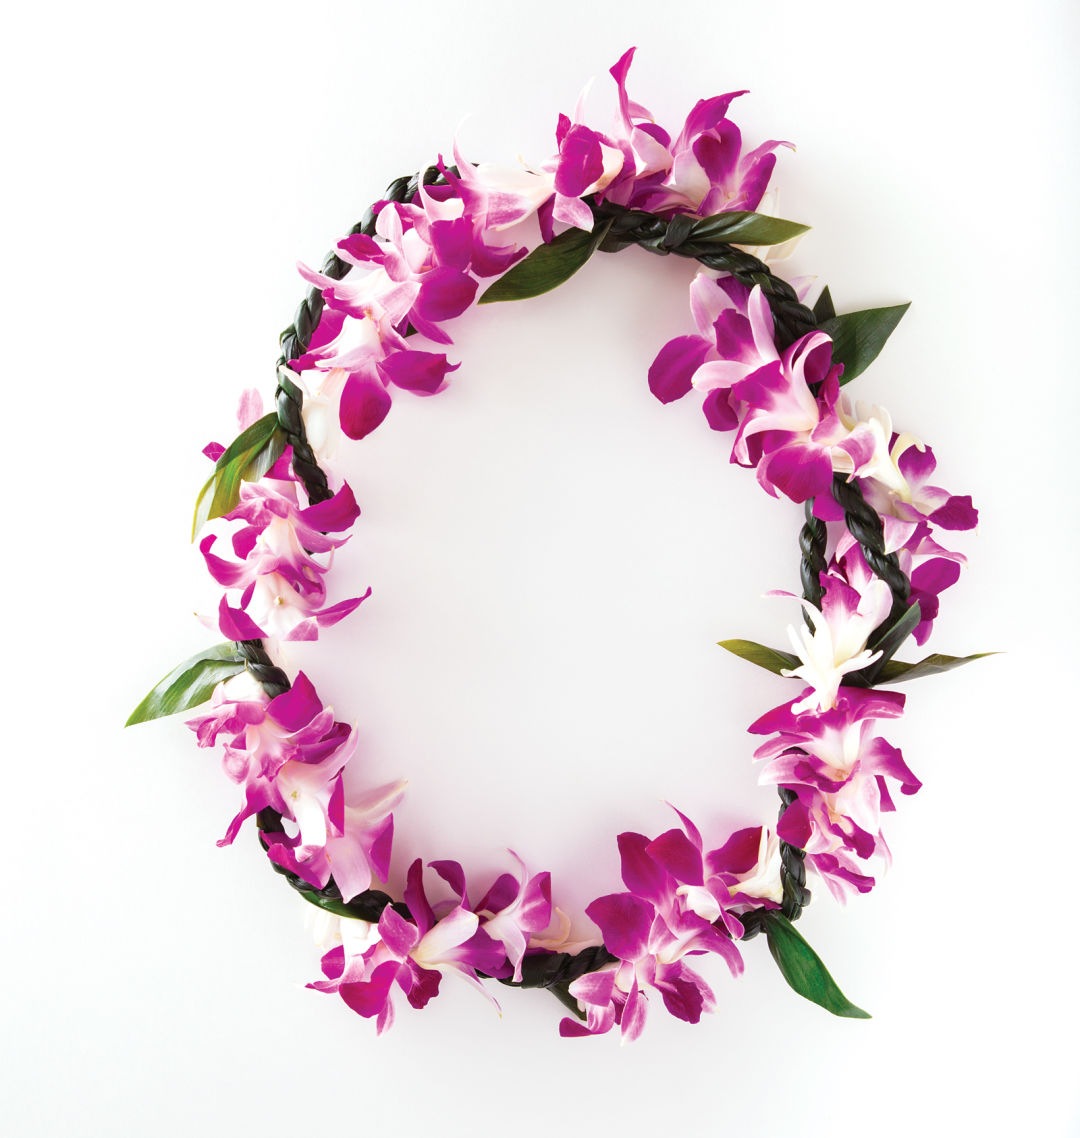 Where to buy hawaiian made leis right here in seattle seattle met seattle met lei nelle clark cyvra1 izmirmasajfo